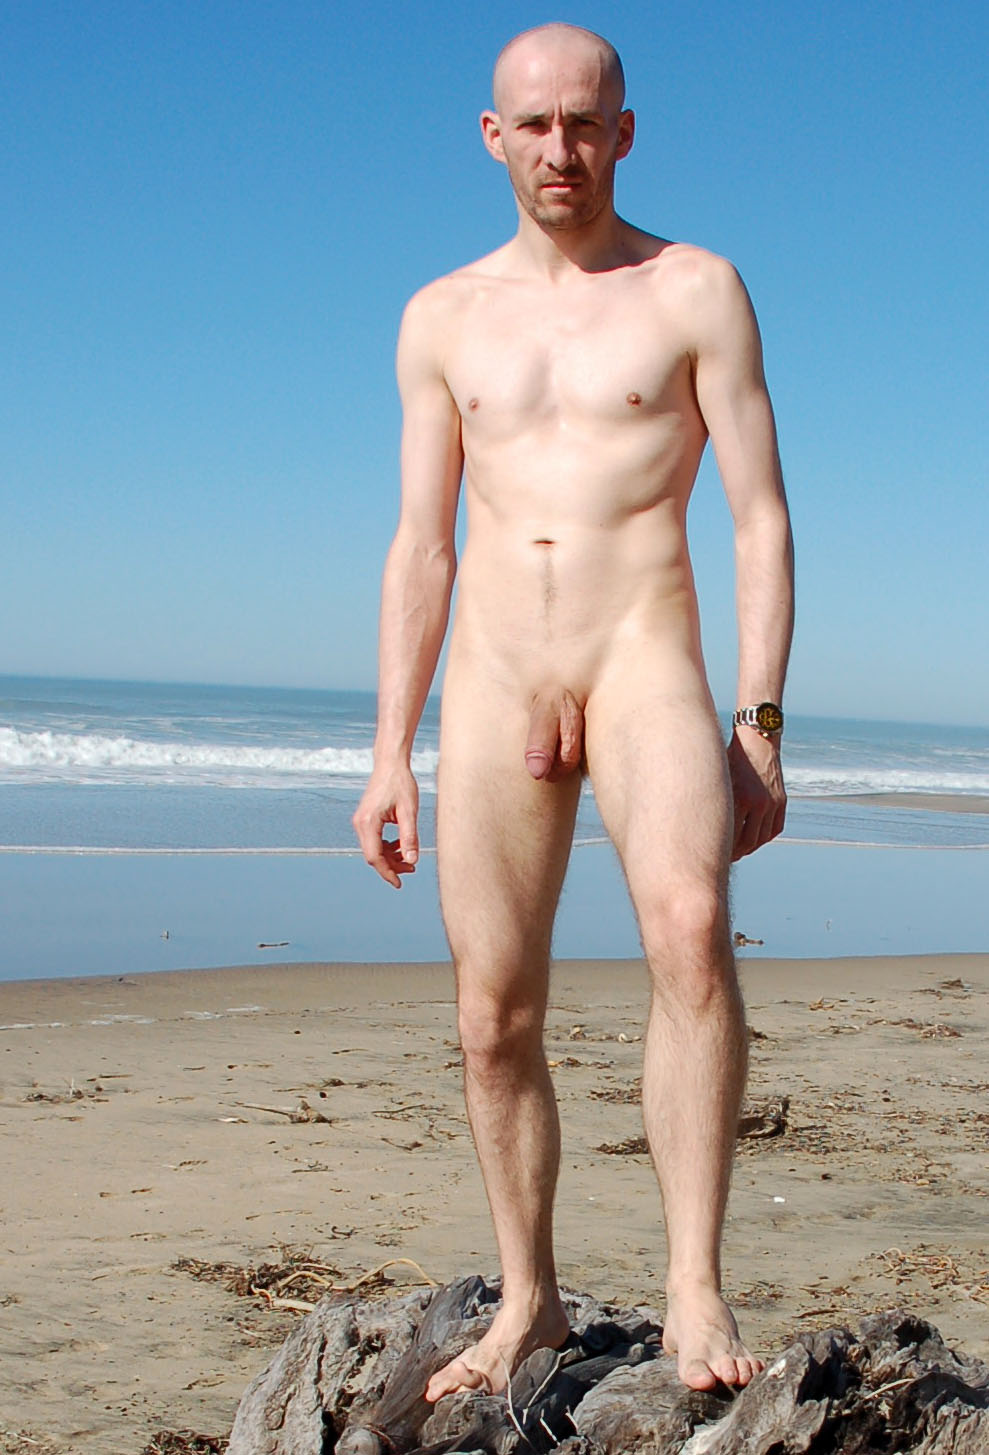 Nude Men With Shaved Pubic Hair